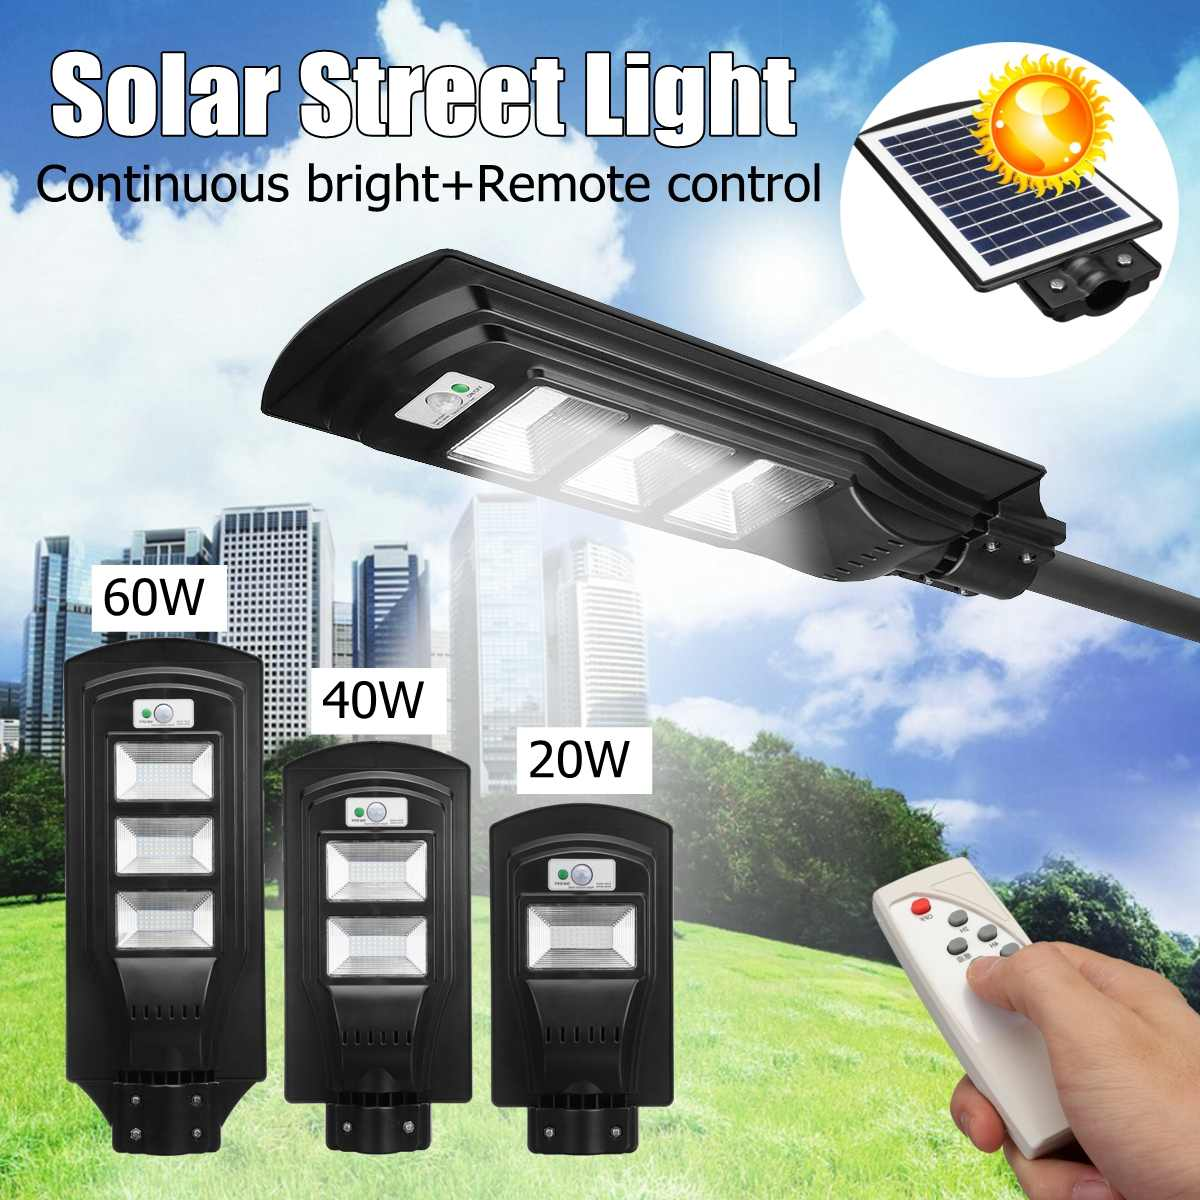 20-90W Solar Power LED Wall Street Light Lighting Waterproof Remote Control Lamp Powered for Outdoor Garden Courtyard20-90W Solar Power LED Wall Street Light Lighting Waterproof Remote Control Lamp Powered for Outdoor Garden Courtyard